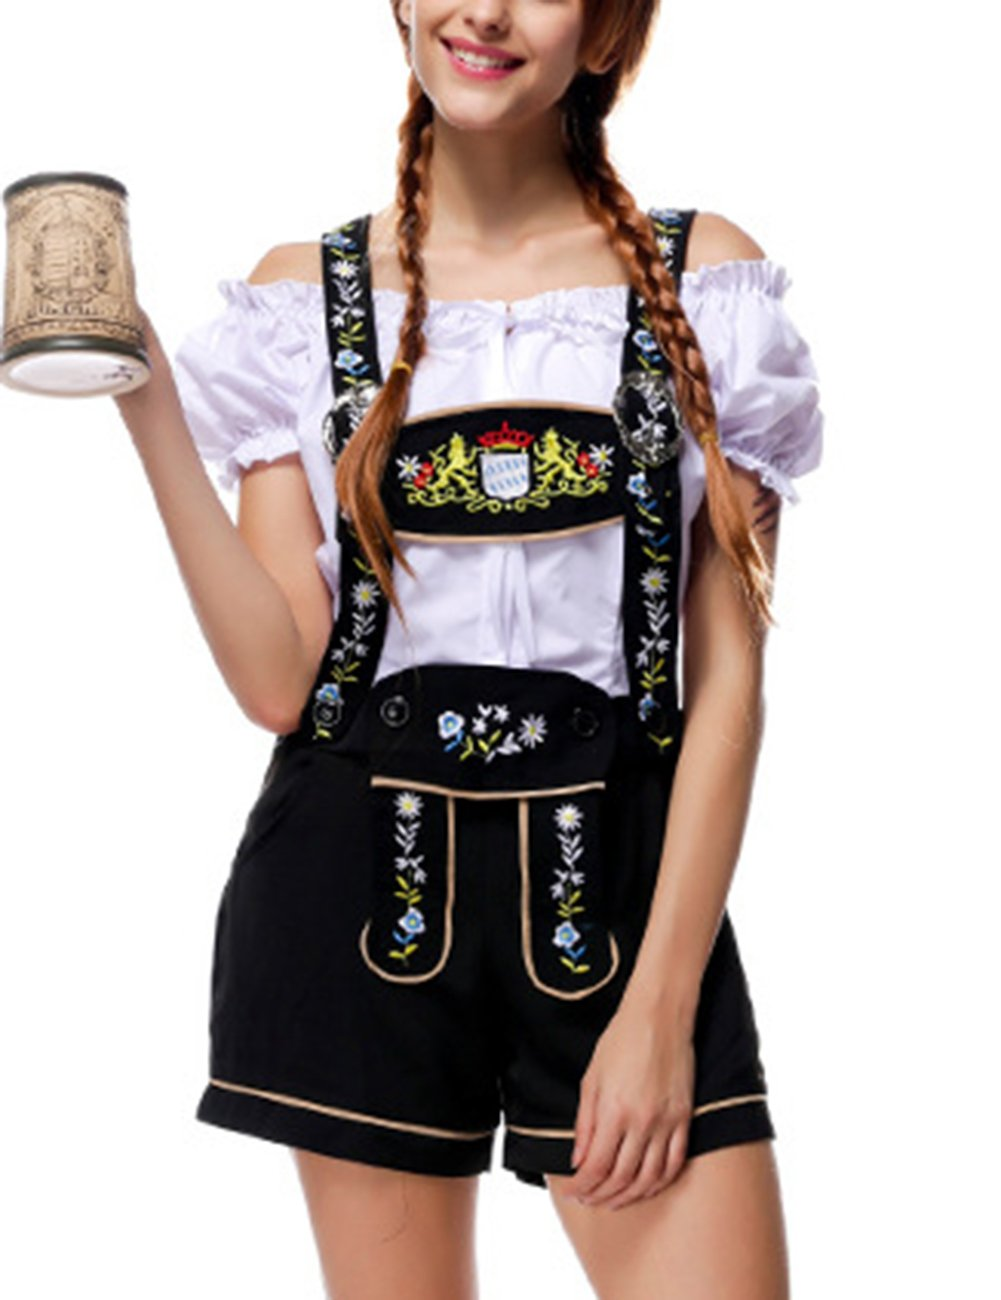 Yiwa Oktoberfest Costumes Women Classic Retro Costumes Sexy Charming Off Shoulder Beer Festival Tops + Suspenders Pants by Yiwa (Image #6)